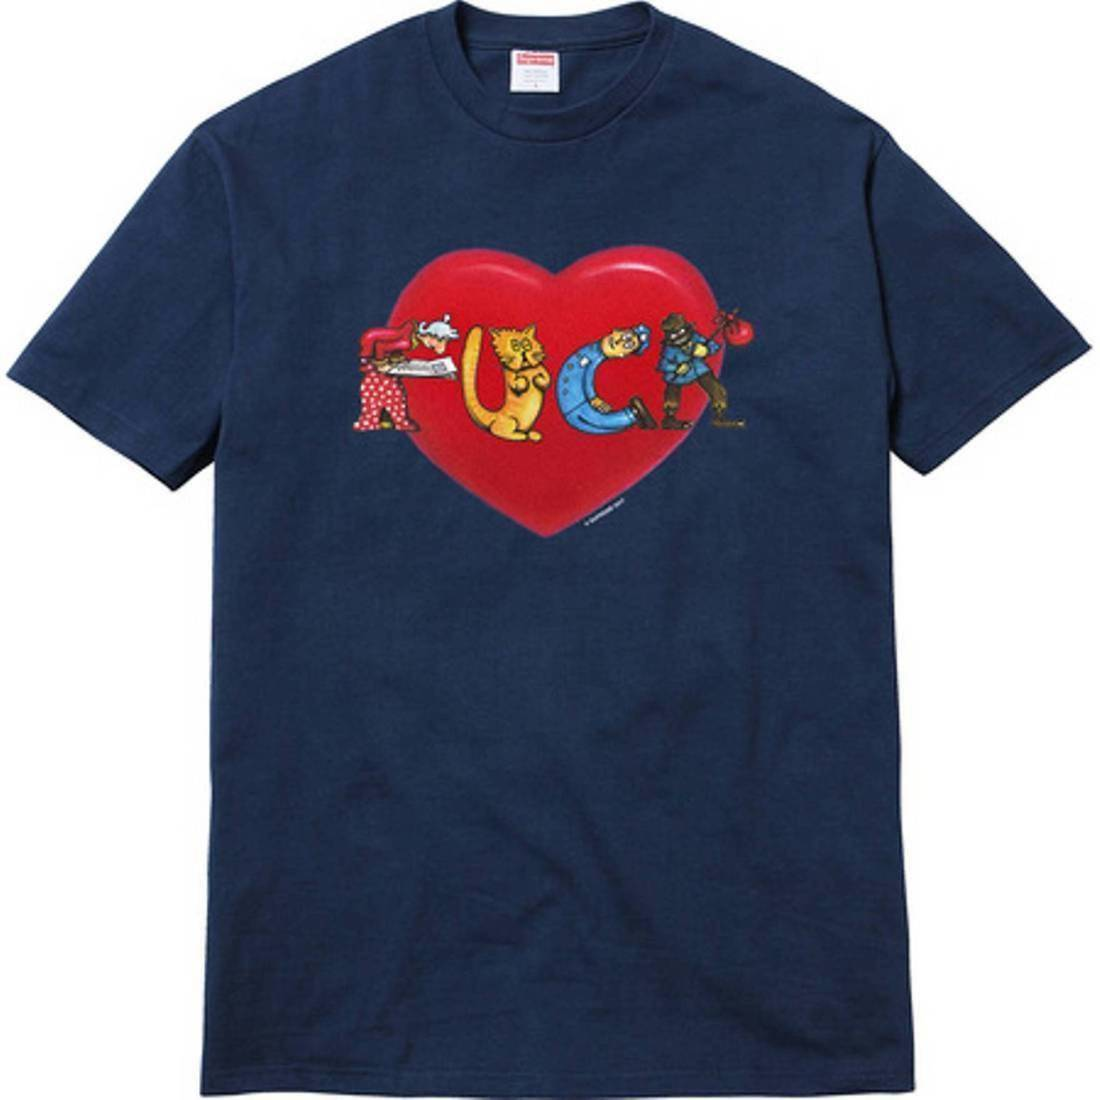 Supreme 17F/W F*ck Love Heart Tee Navy